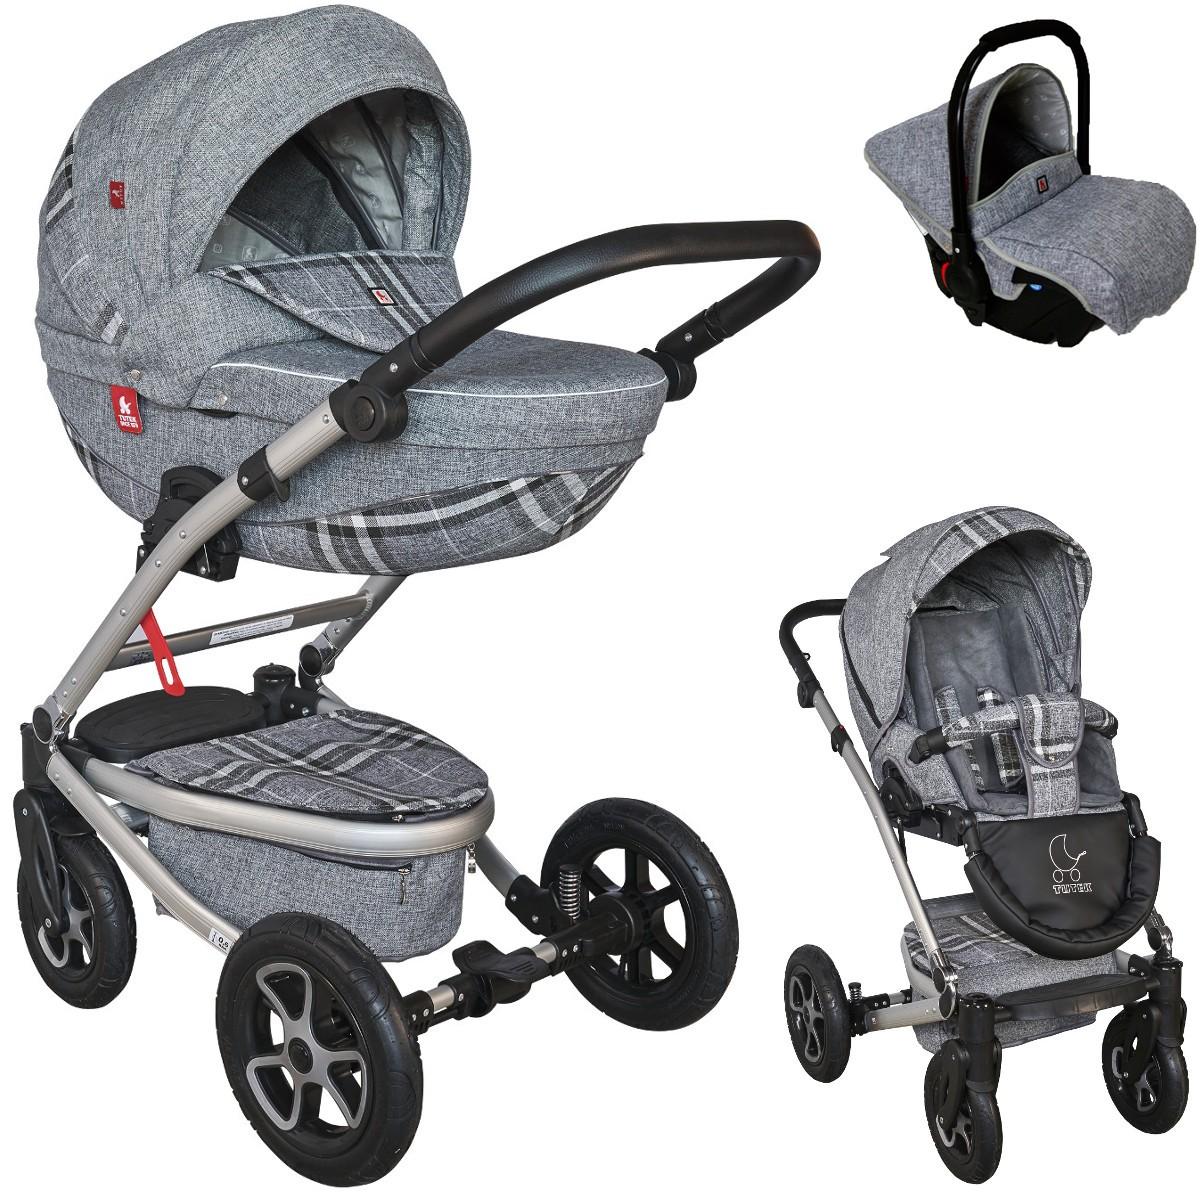 timer kombi kinderwagen 2in1 mit babywanne sportwagenaufsatz buggy oder 3in1 babyschale. Black Bedroom Furniture Sets. Home Design Ideas